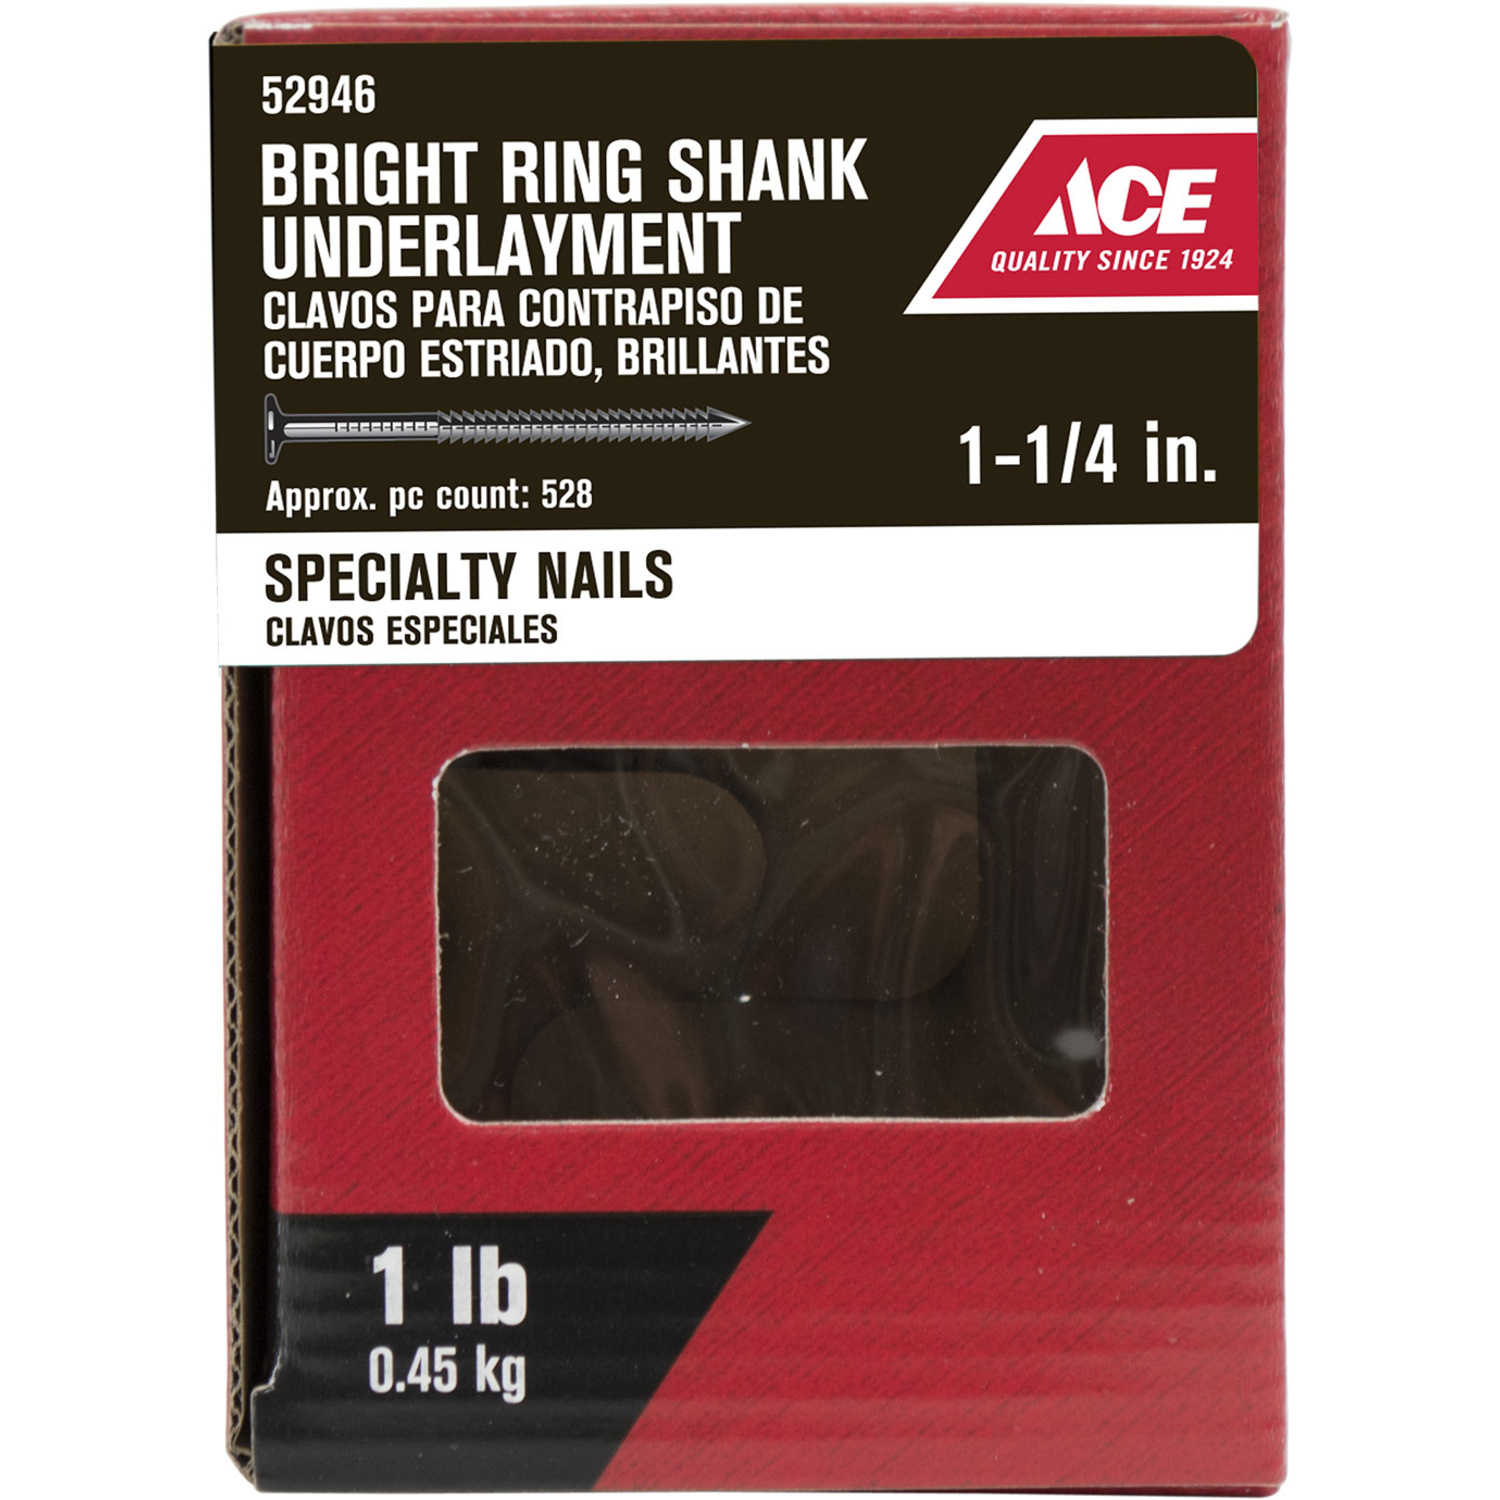 Ace  3D  1-1/4 in. L Underlayment  Steel  Nail  Round  Annular Ring Shank  1  1 lb.